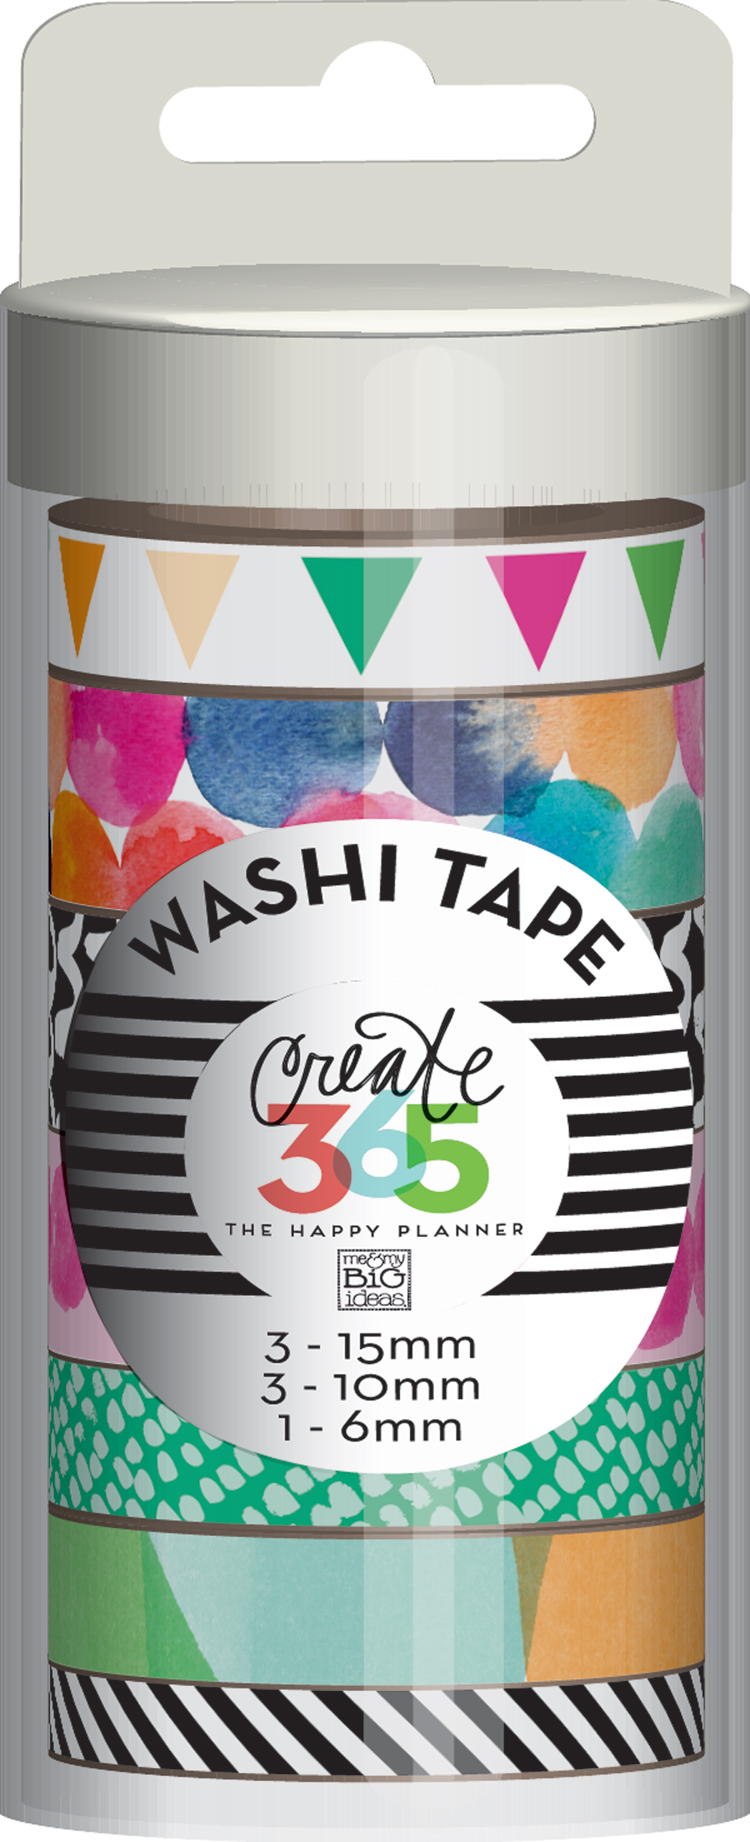 'Watercolor' Washi Tape for The Happy Planner™ | me & my BIG ideas.jpg